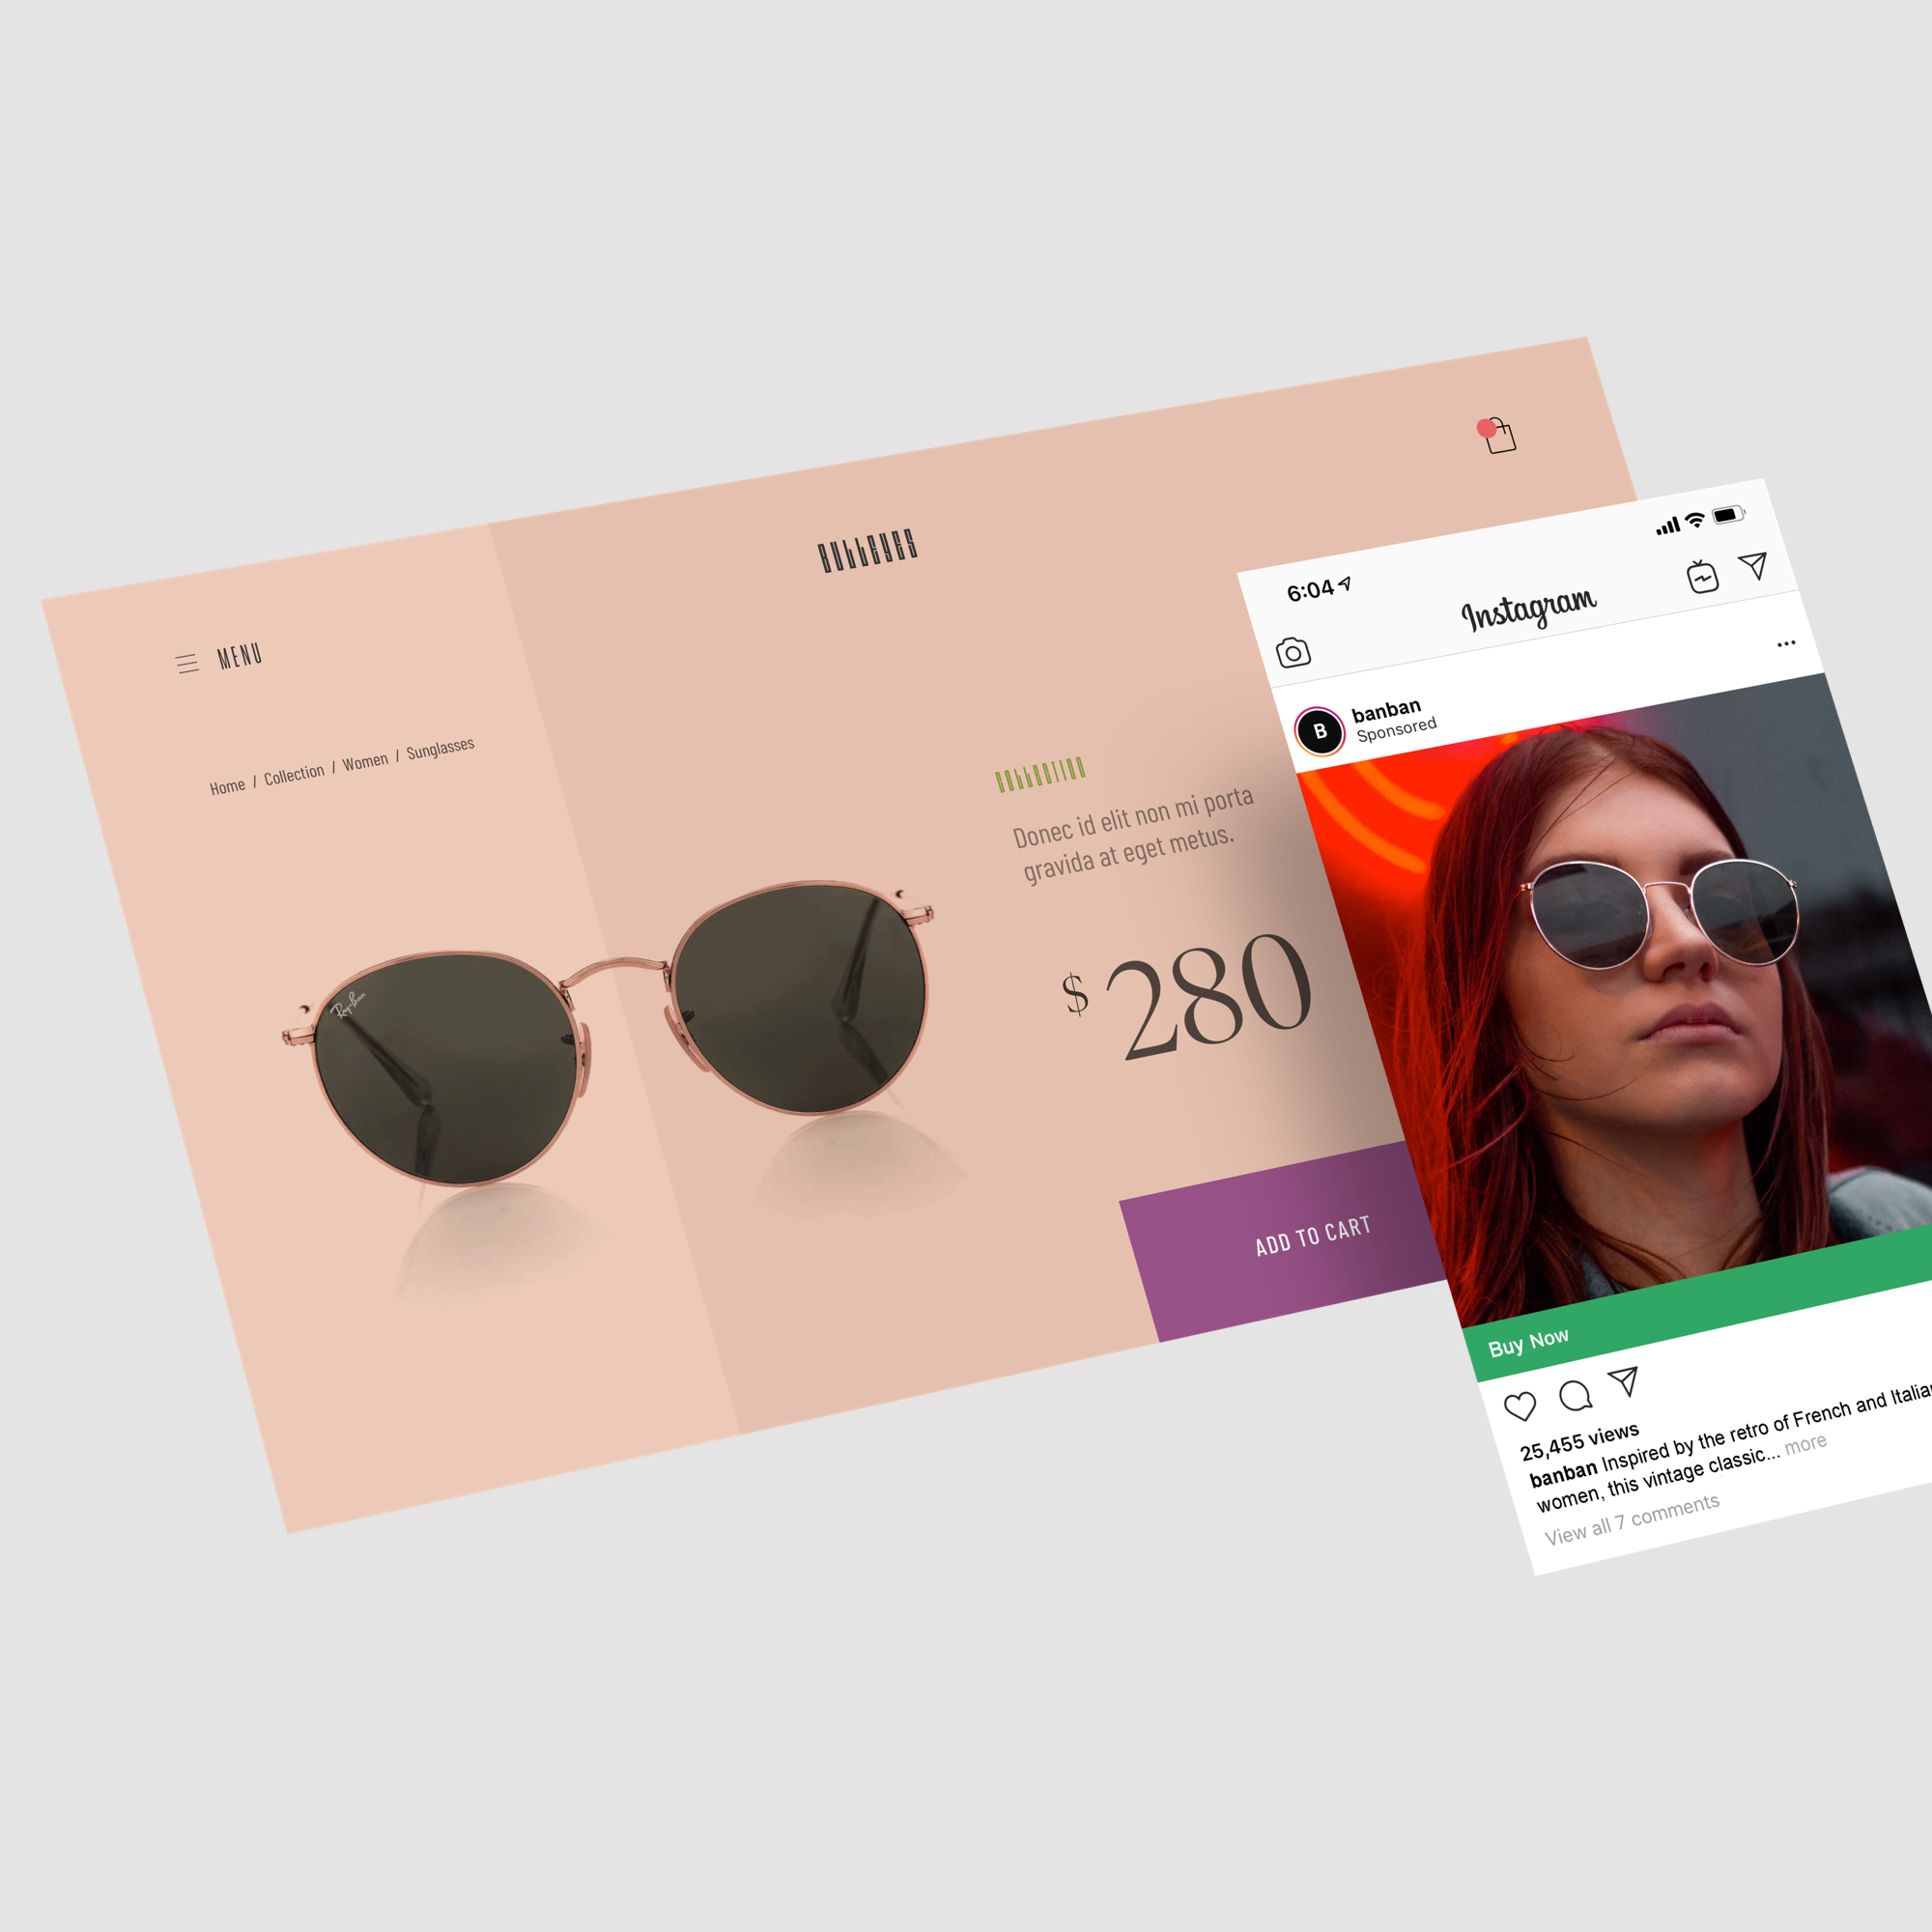 df8ae49944e6 Webflow Ecommerce: Visually design, build, and grow ecommerce websites